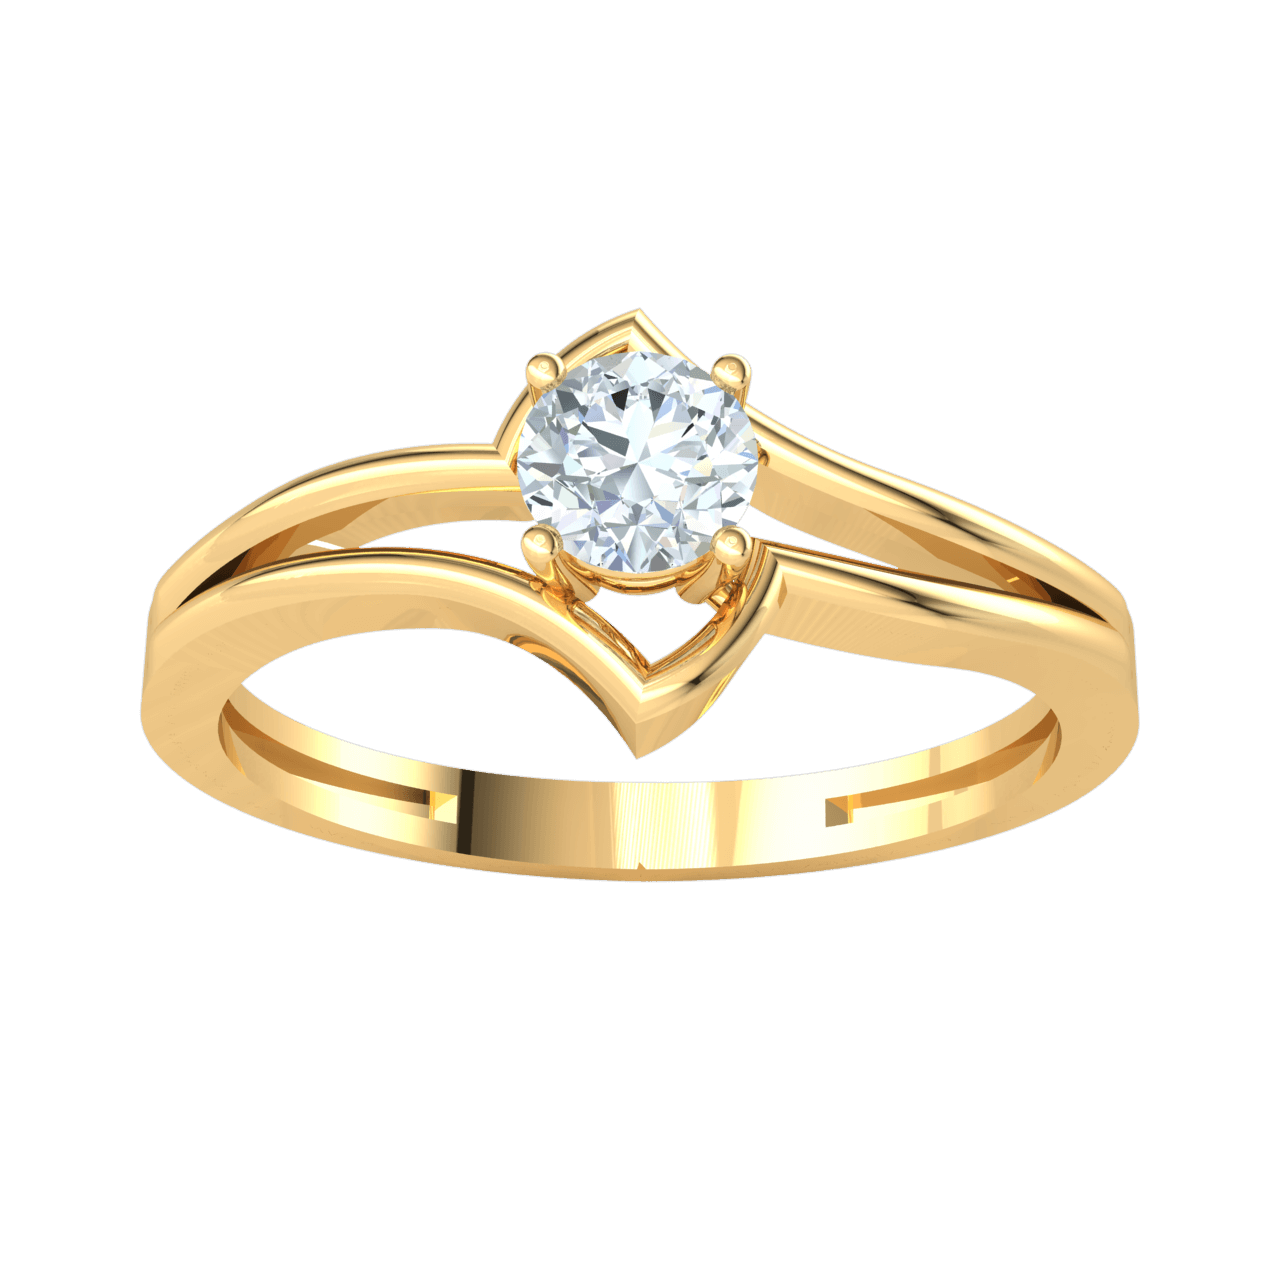 Gorgeous White Diamond Solitare With An Artistic Flare Set In Real 0.27 Ct J SI2 and 10 kt Gold